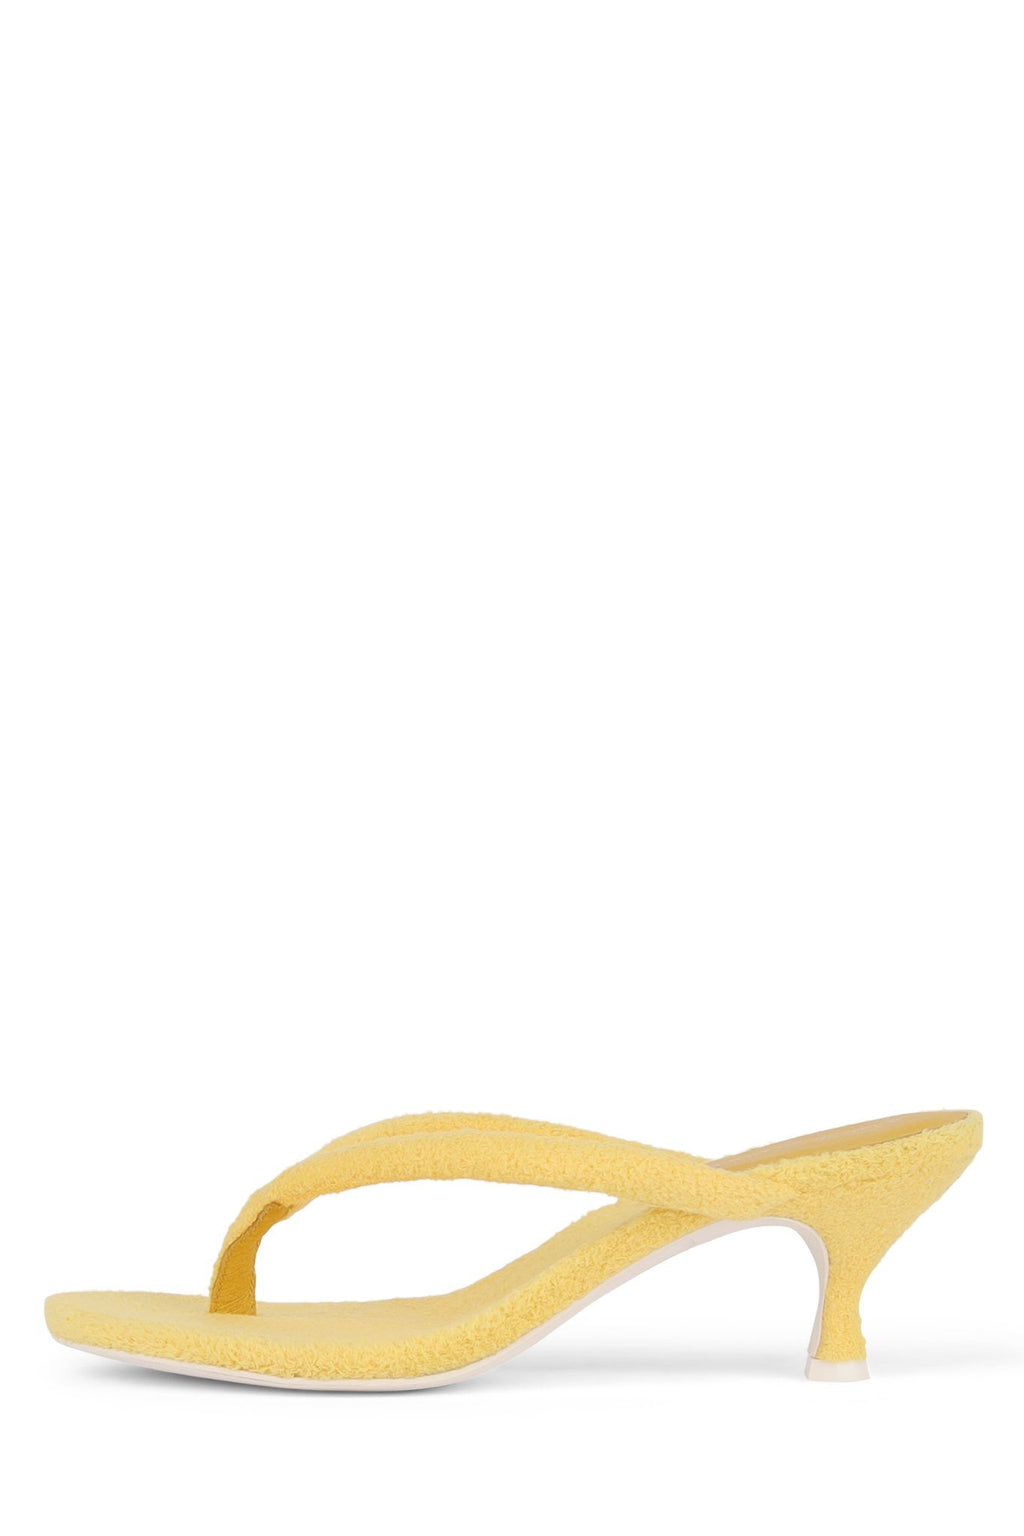 BRINK Heeled Sandal STRATEGY Yellow Terry Cloth 6